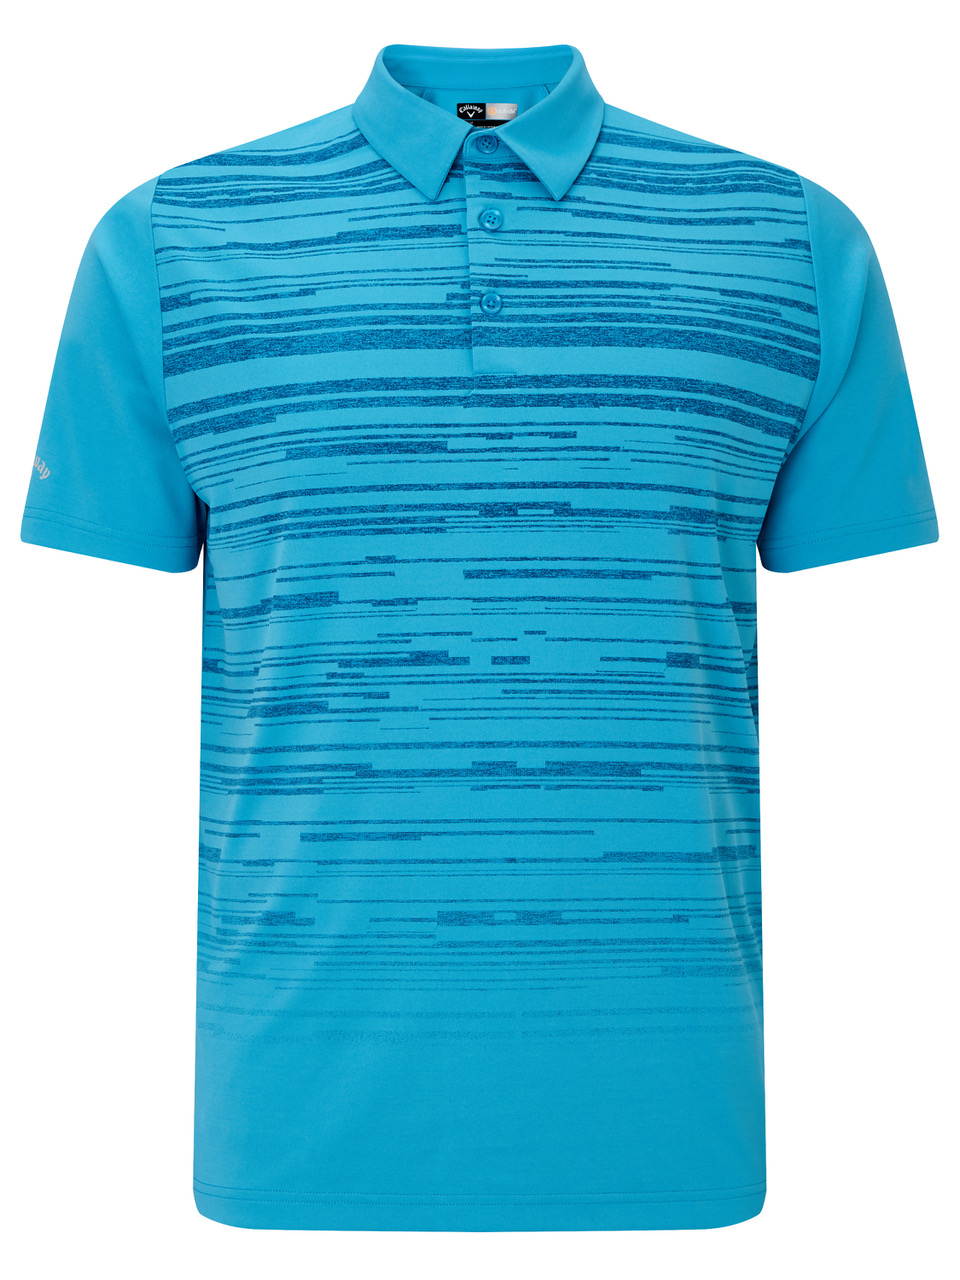 With its soft lightweight air-spun Tactel yarns, whether it's on the golf course or in the office, you'll always look stylish and feel comfortable in this Callaway Raglan Textured Space Dye Print Polo.jpeg